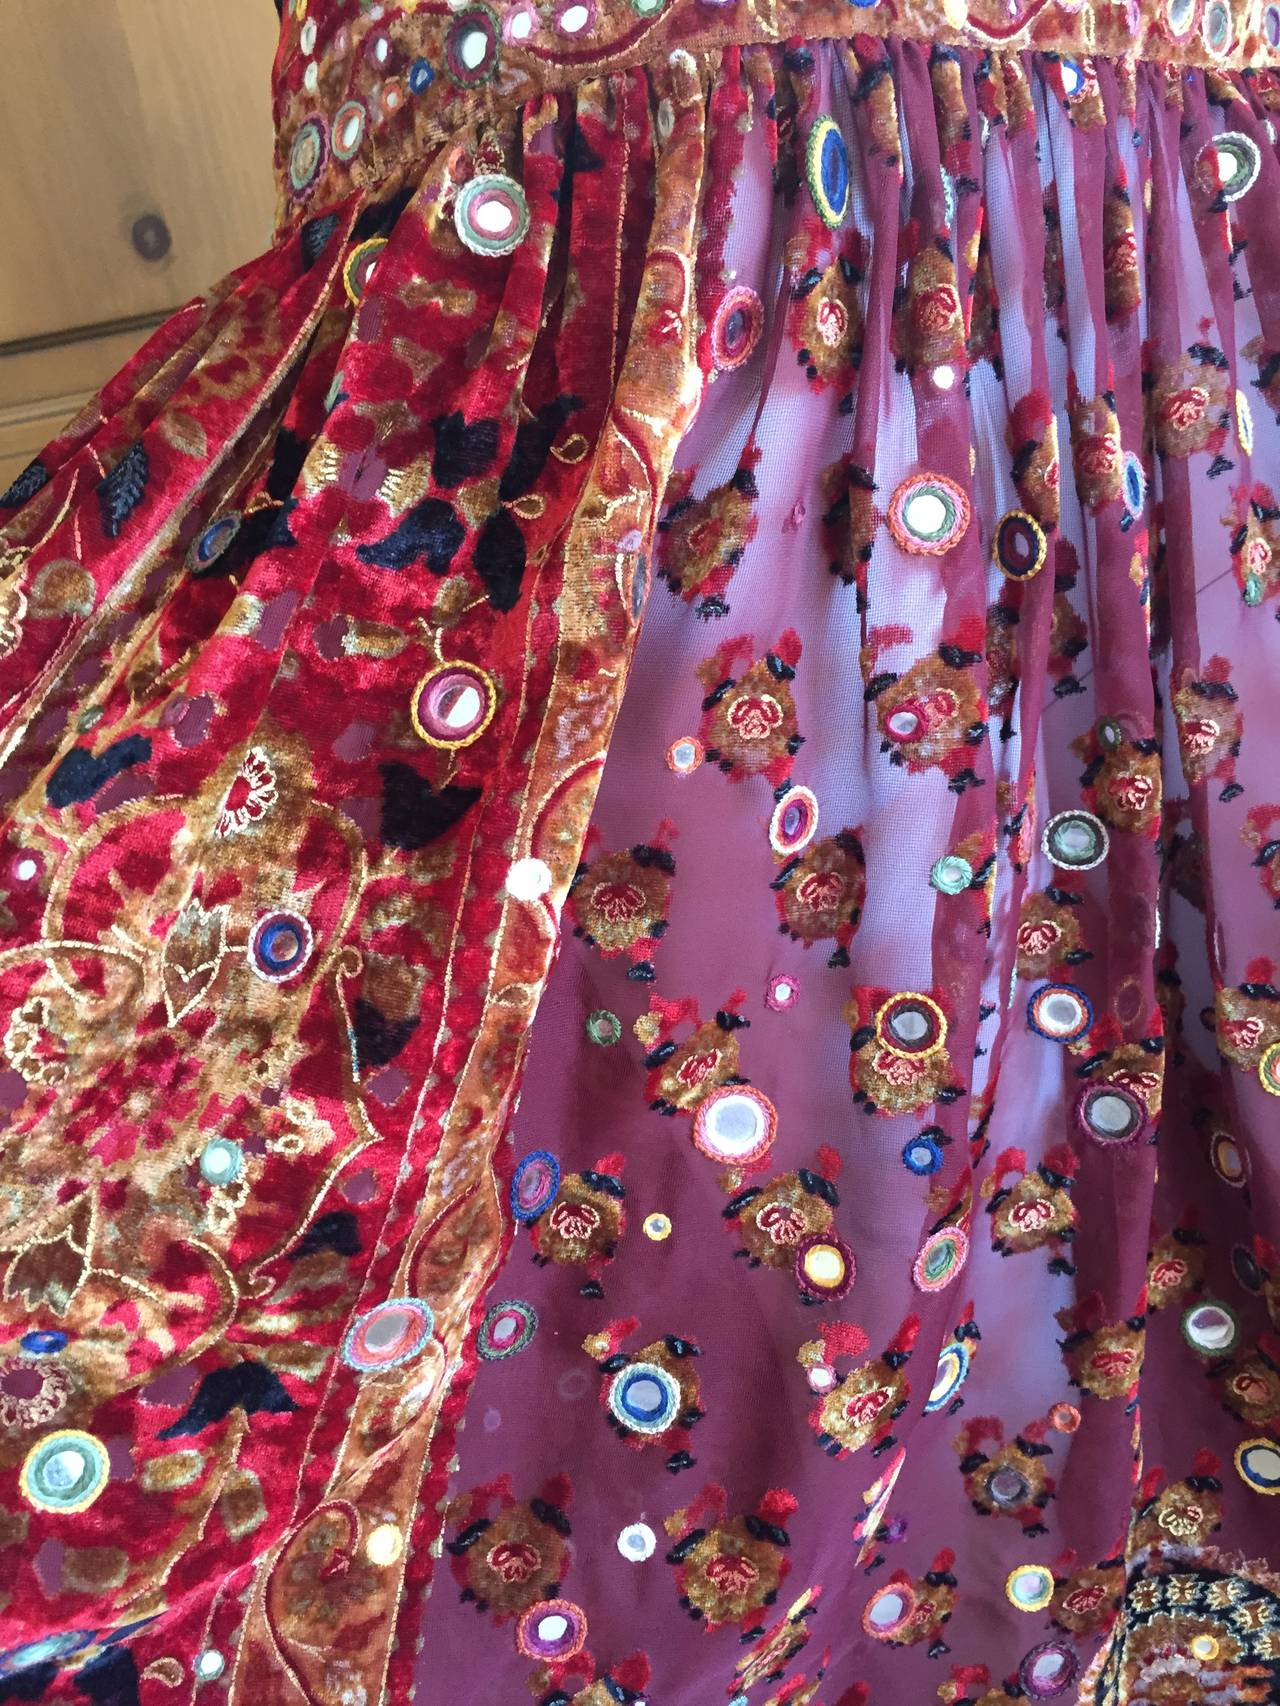 Oscar de la Renta Vintage Boho Gypsy Skirt with Mirrors 3